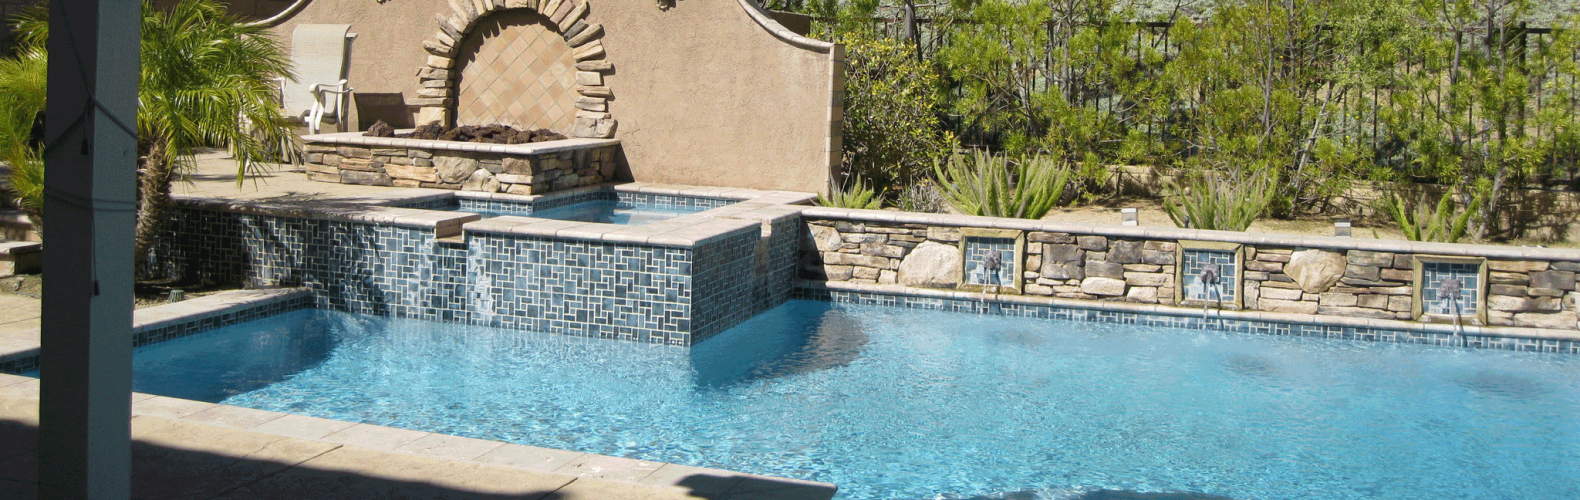 Professional simi valley pool service